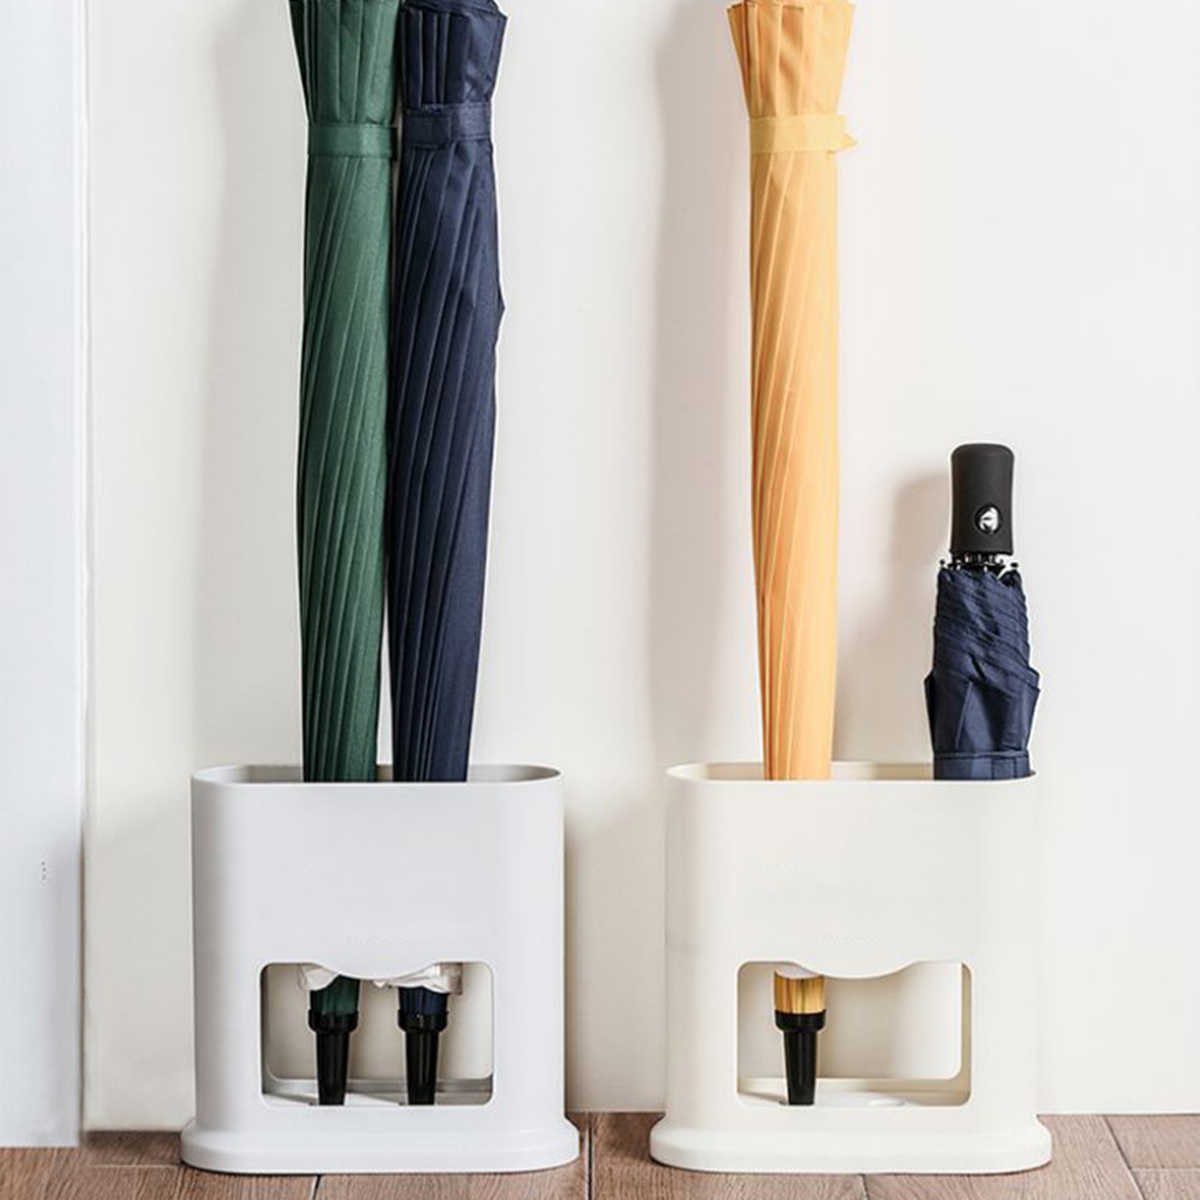 Umbrella Stand Rack Umbrella Draining Stand Storage Holder Hold Up To 4 Umbrellas Suitable For Both Short And Long Umbrellas